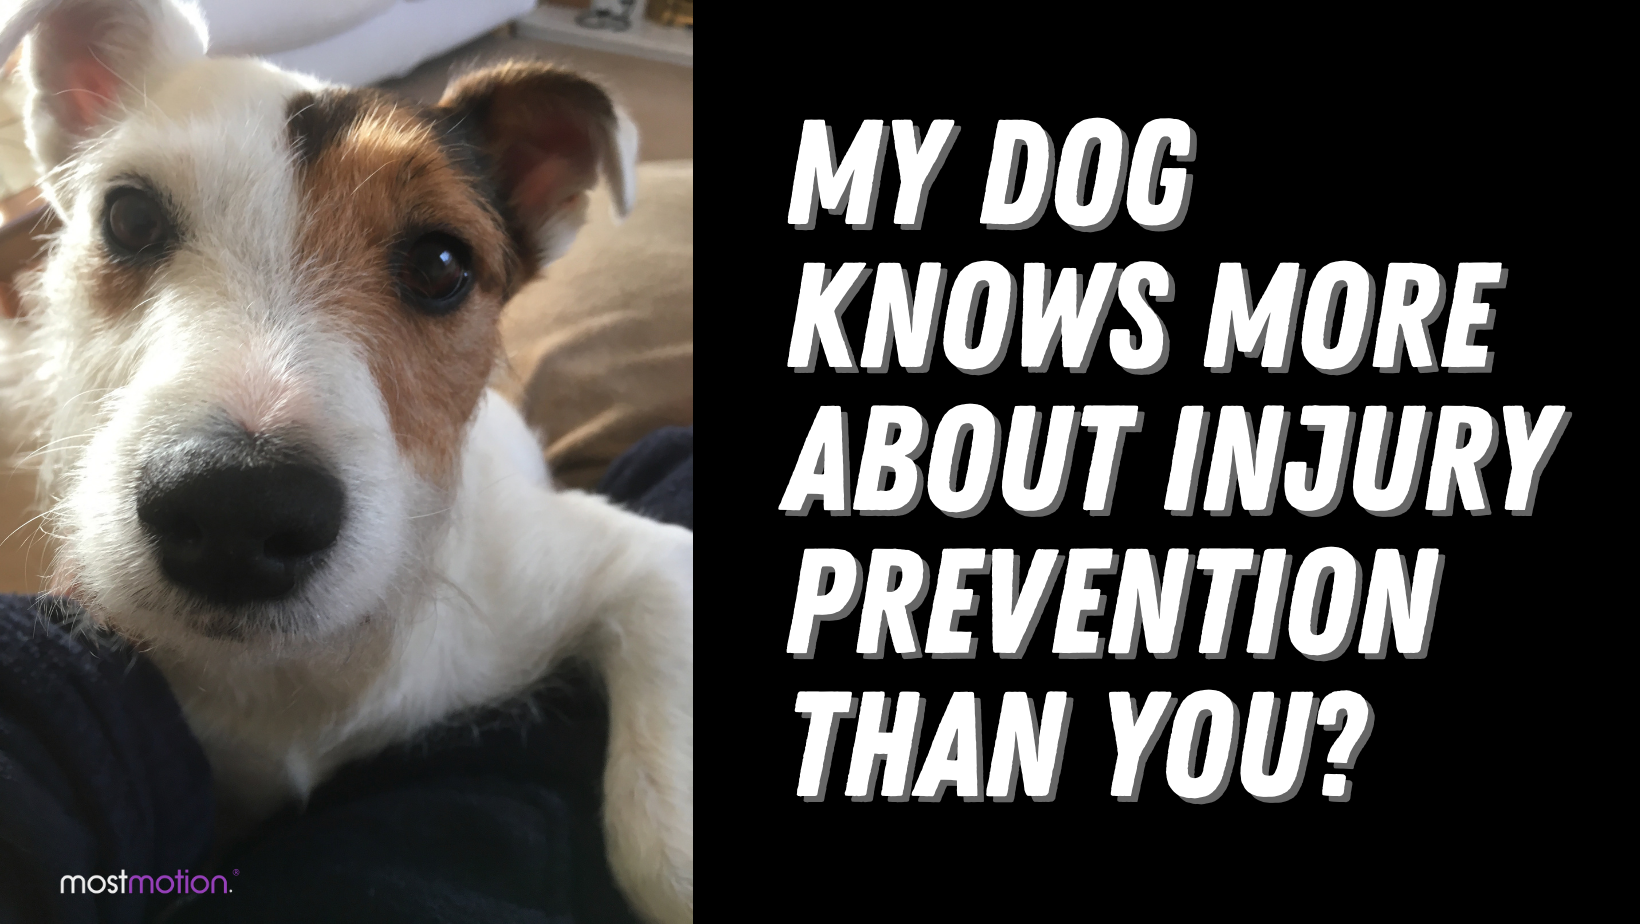 My Dog Knows More About Injury Prevention Than You?